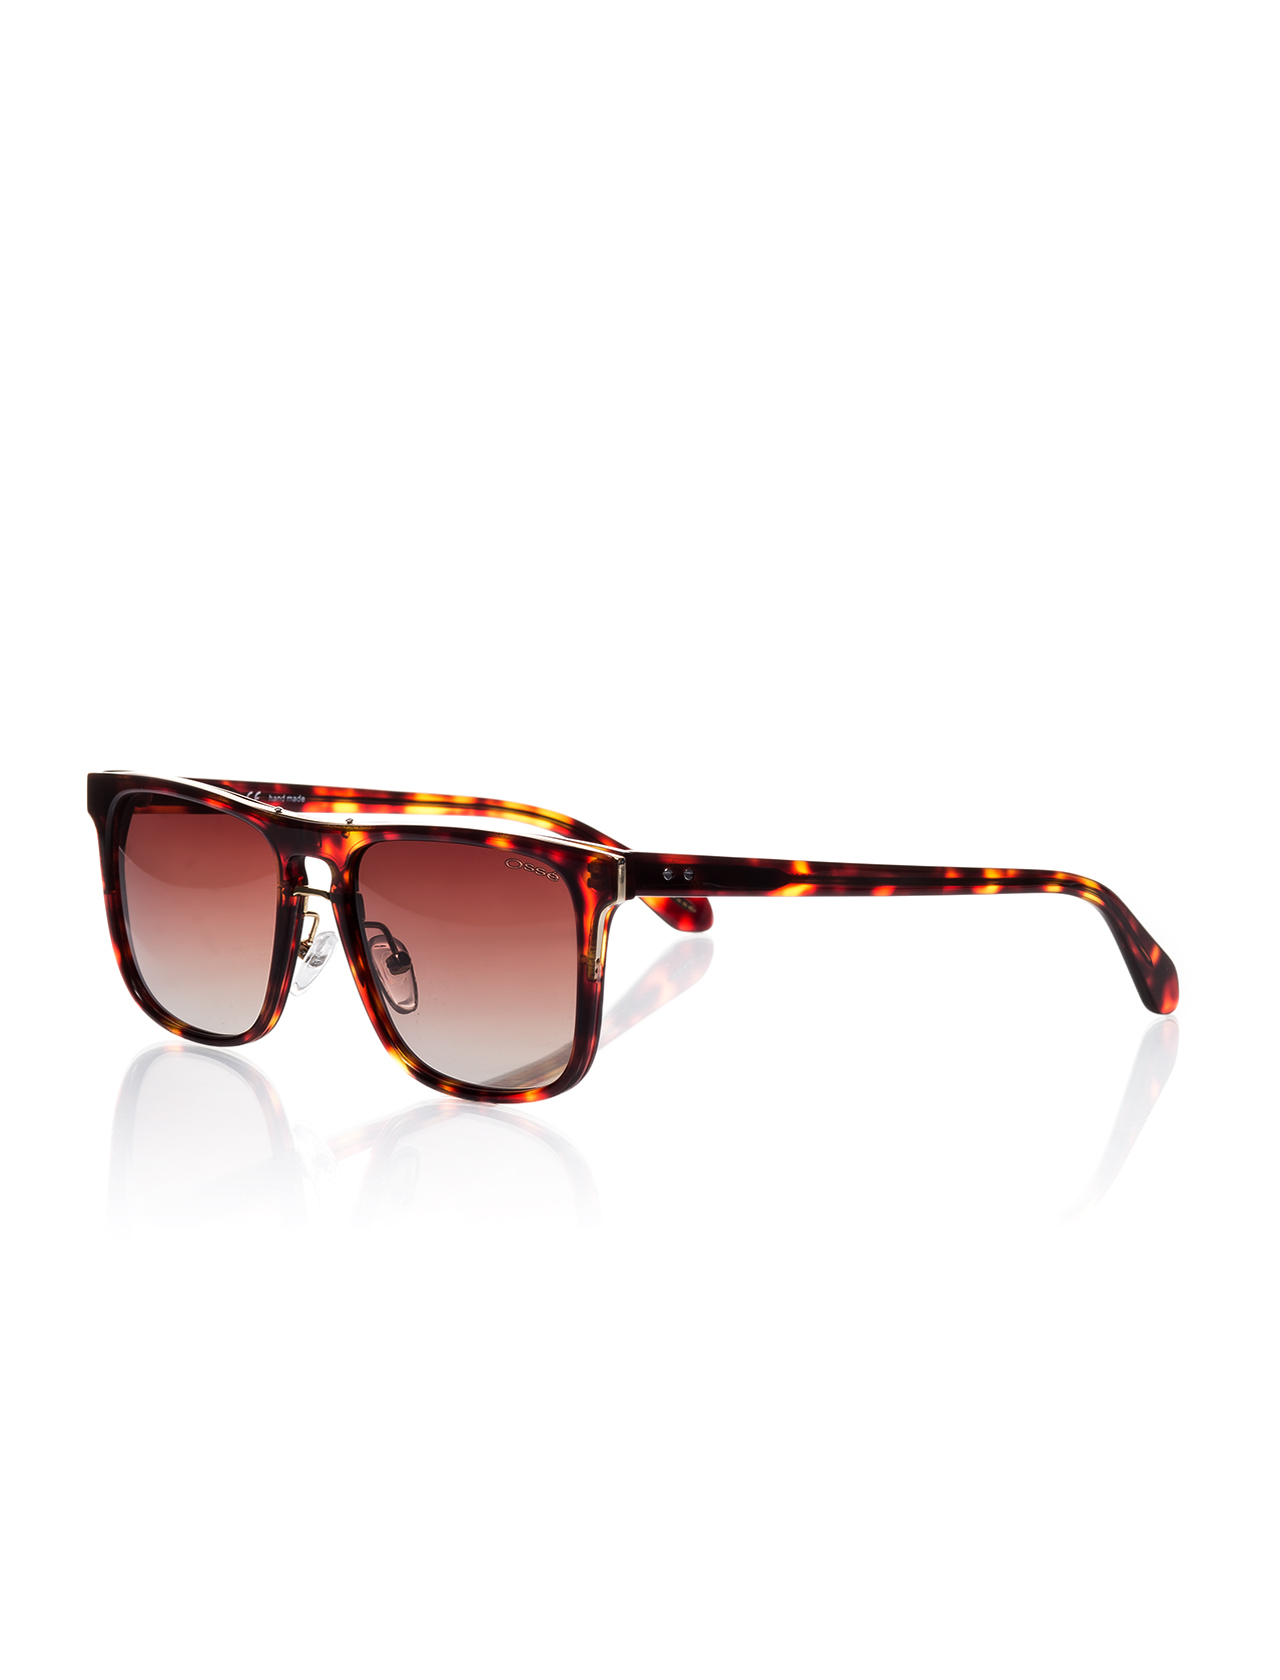 Unisex Patterned Brown Plastic Sunglasses